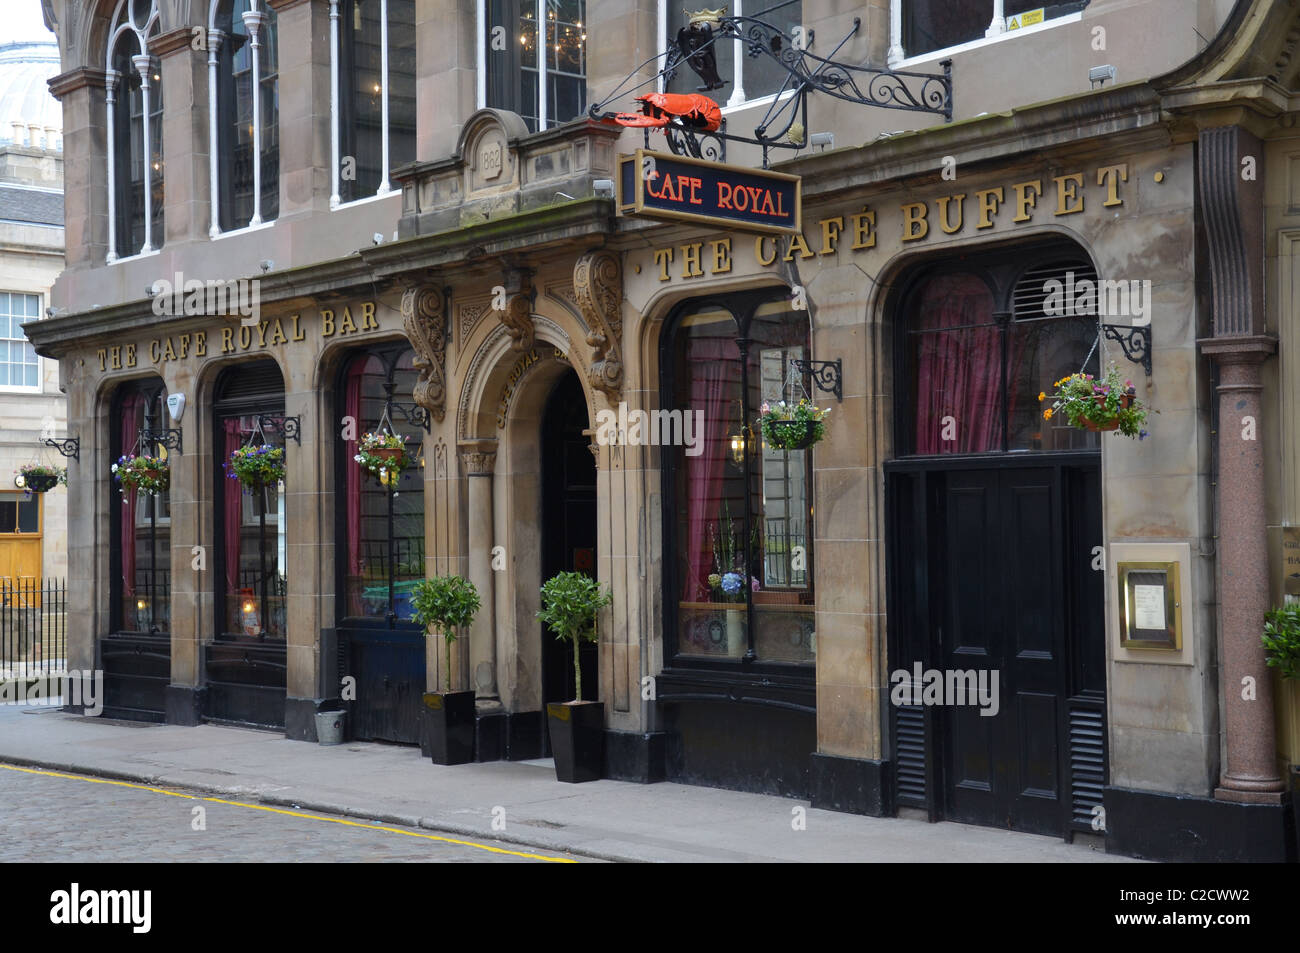 The Cafe Royal in West Register Street in Edinburgh, Scotland, UK. - Stock Image